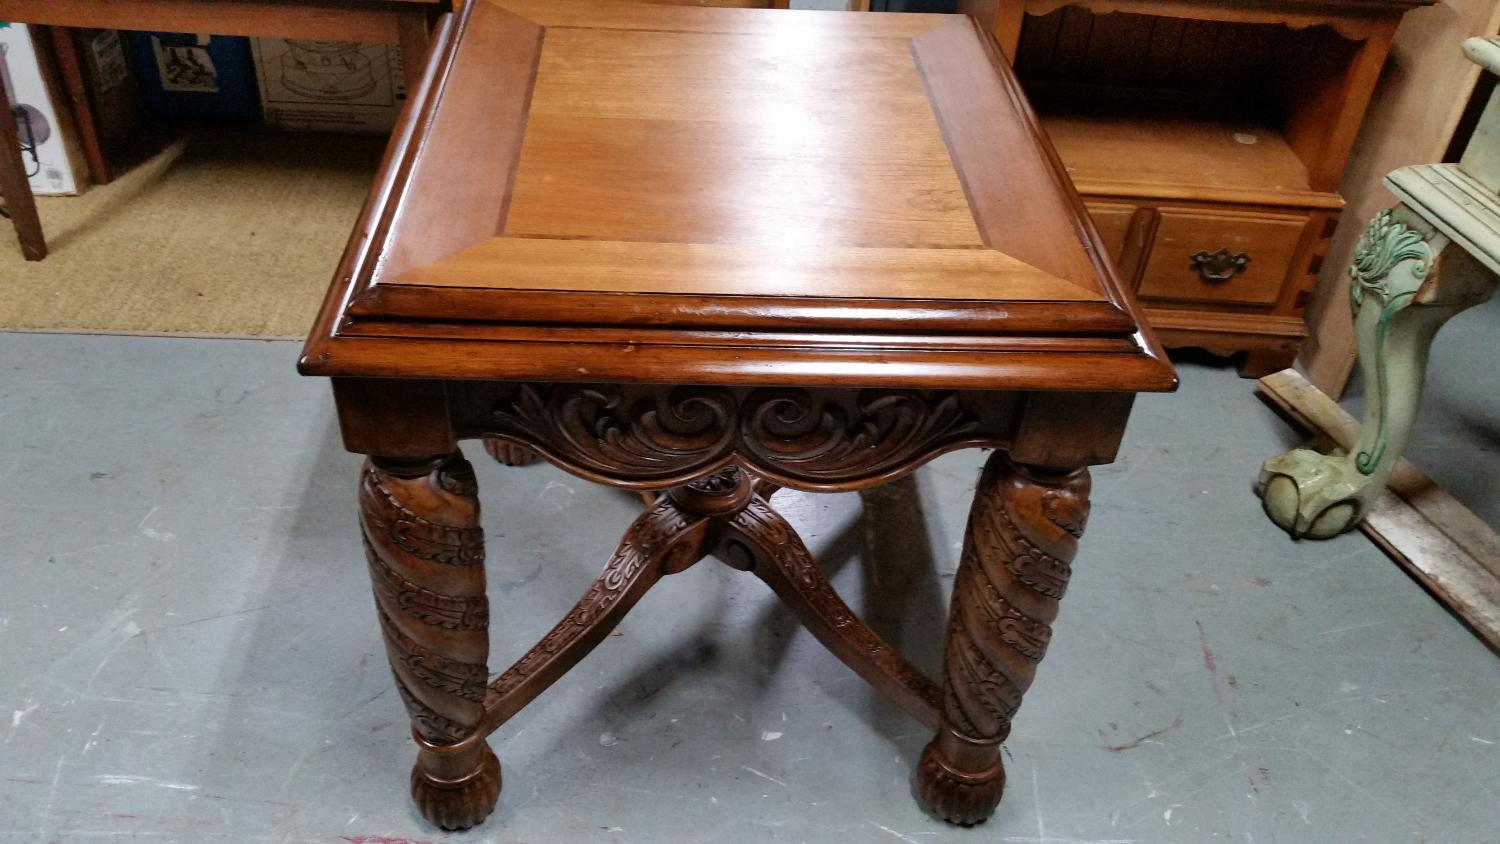 Best side table for sale in greensboro north carolina for for Table 6 greensboro nc